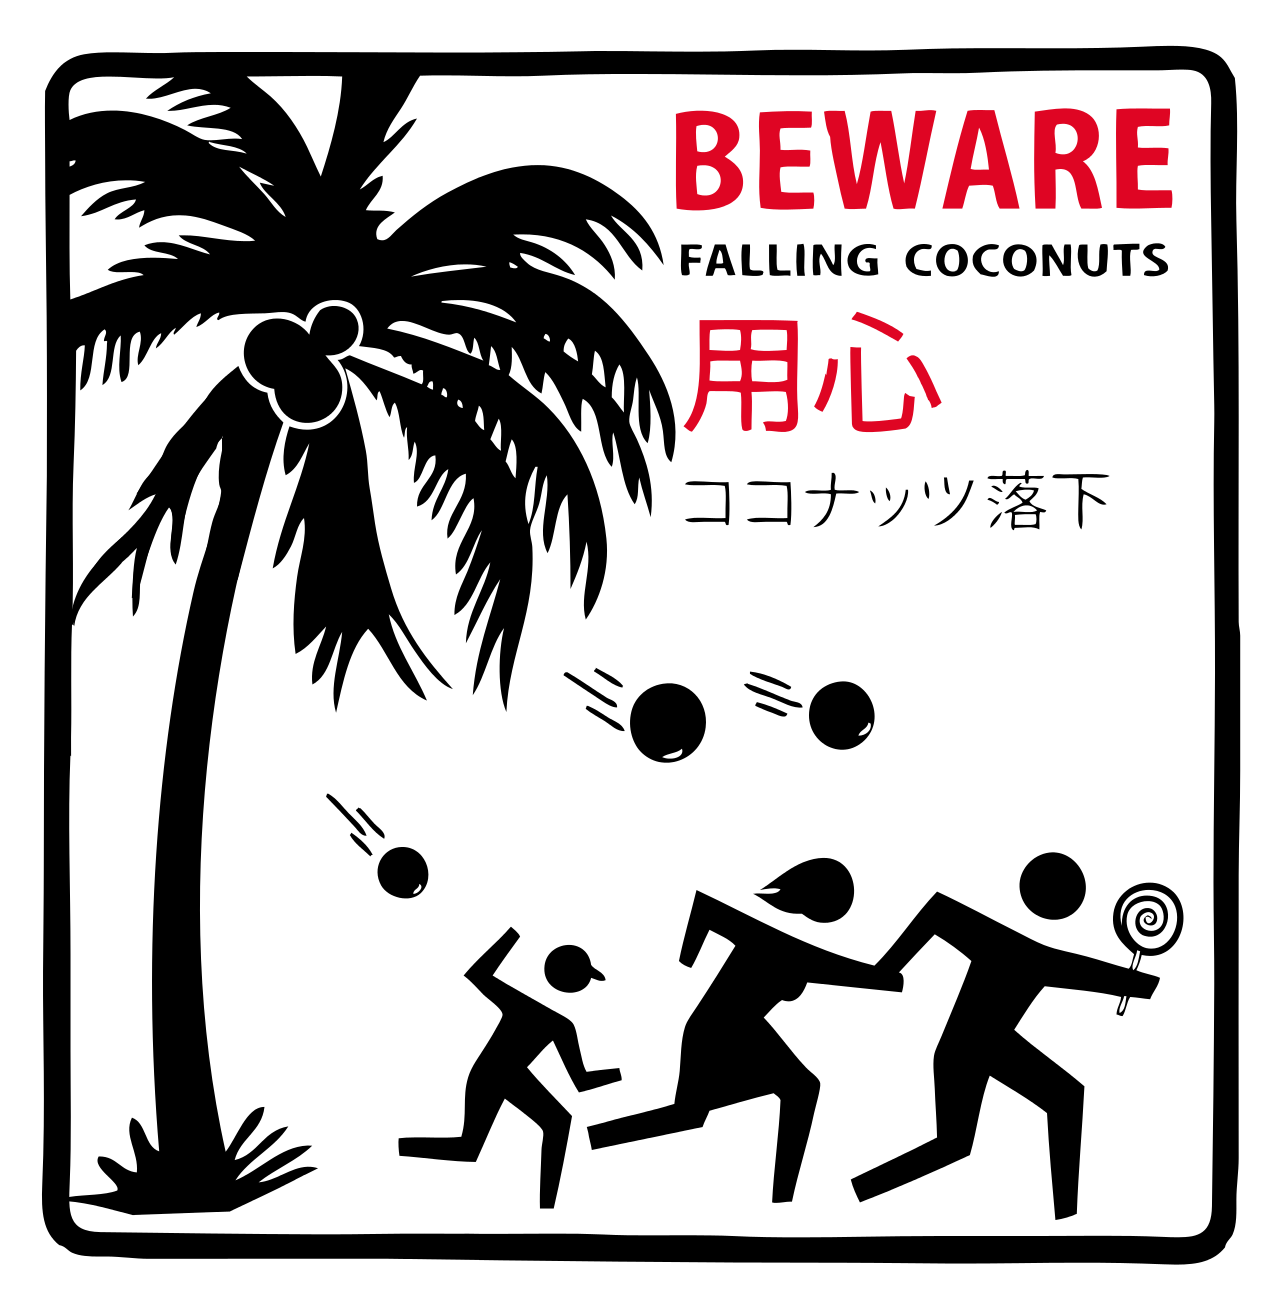 Yes, coconuts will seek out and kill. Even holding a lollipop won't save you.